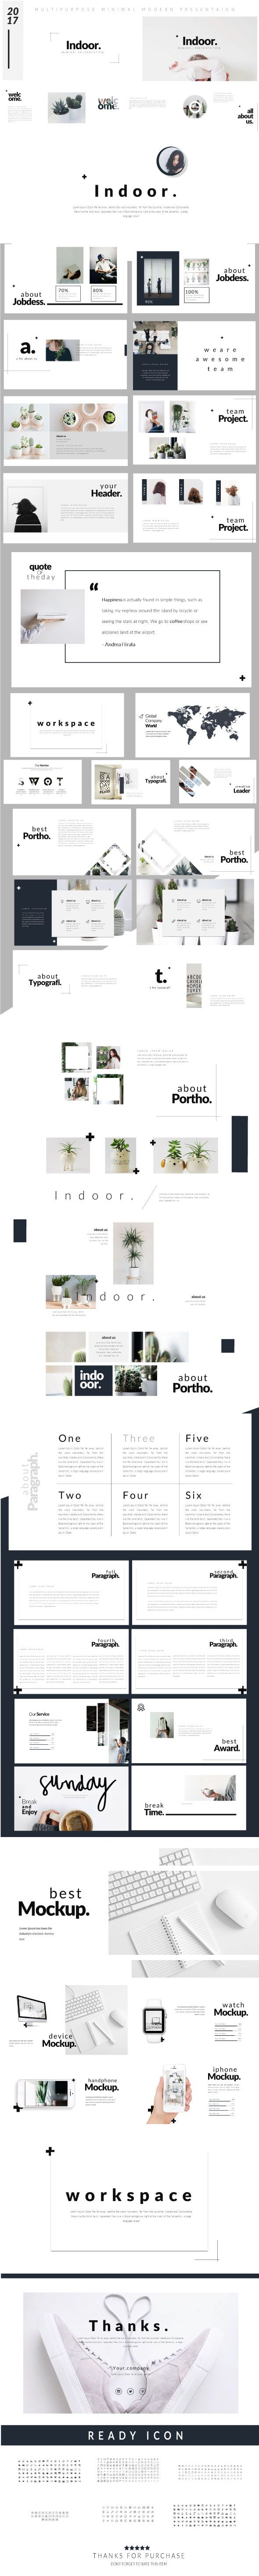 Best Minimal Powerpoint Template Images On